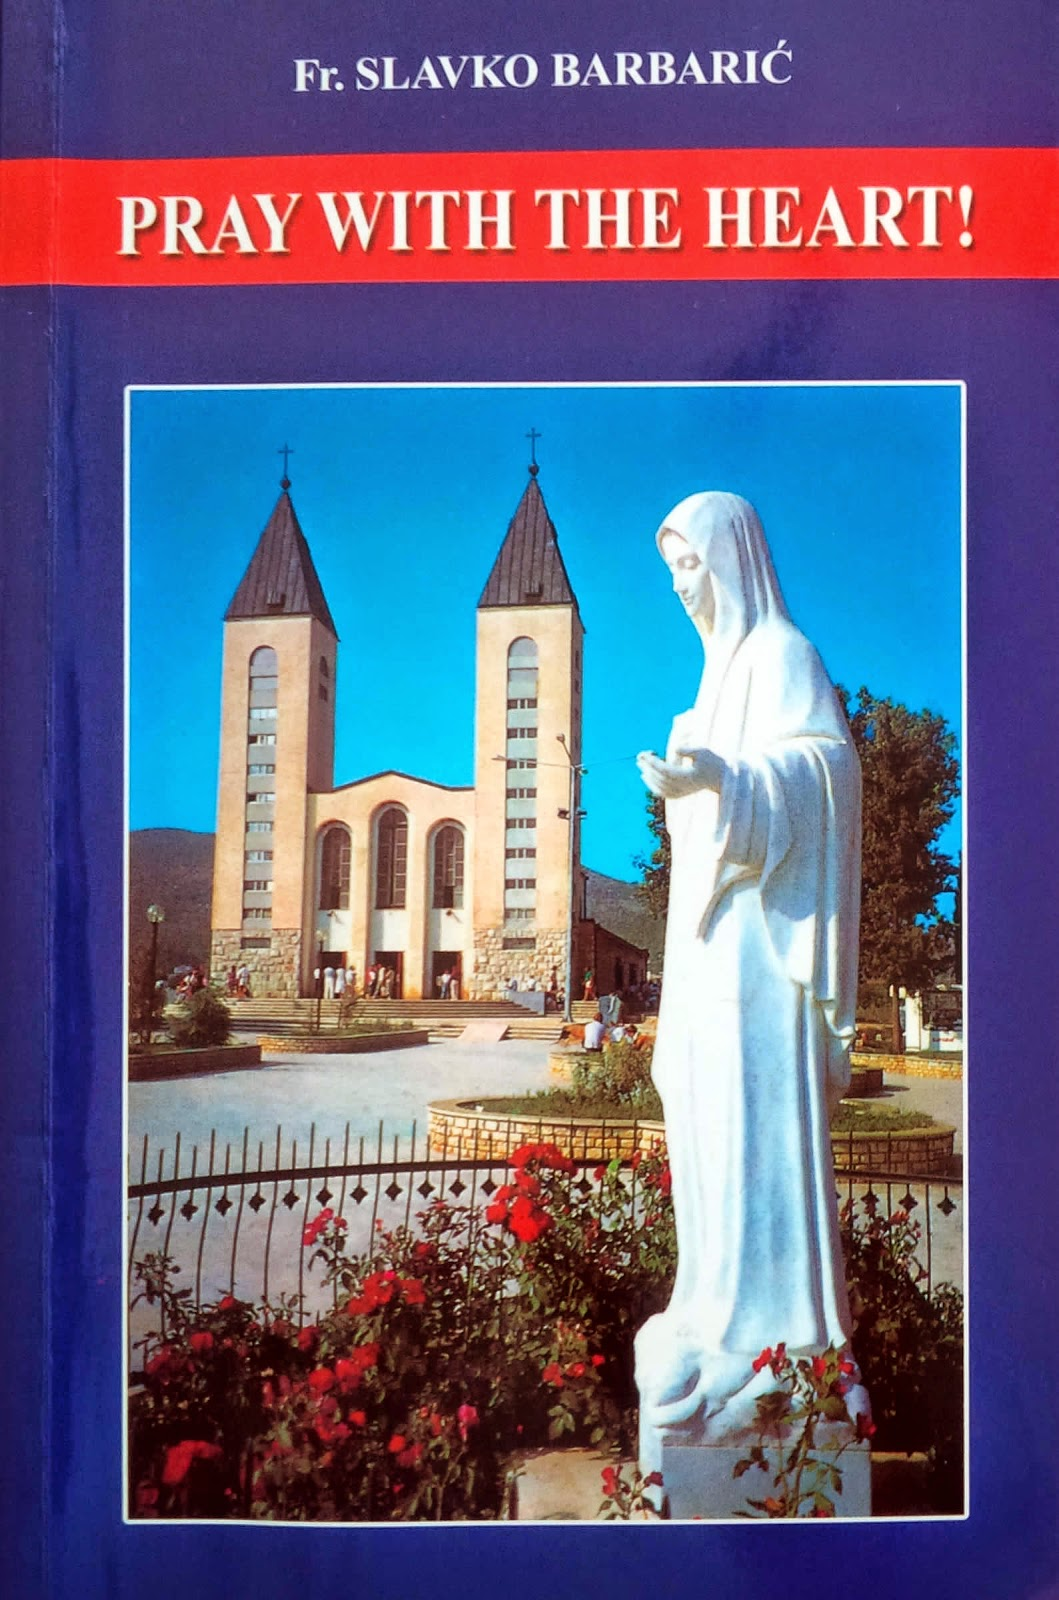 Father Slavko Barbarić's book, Pray With The Heart.